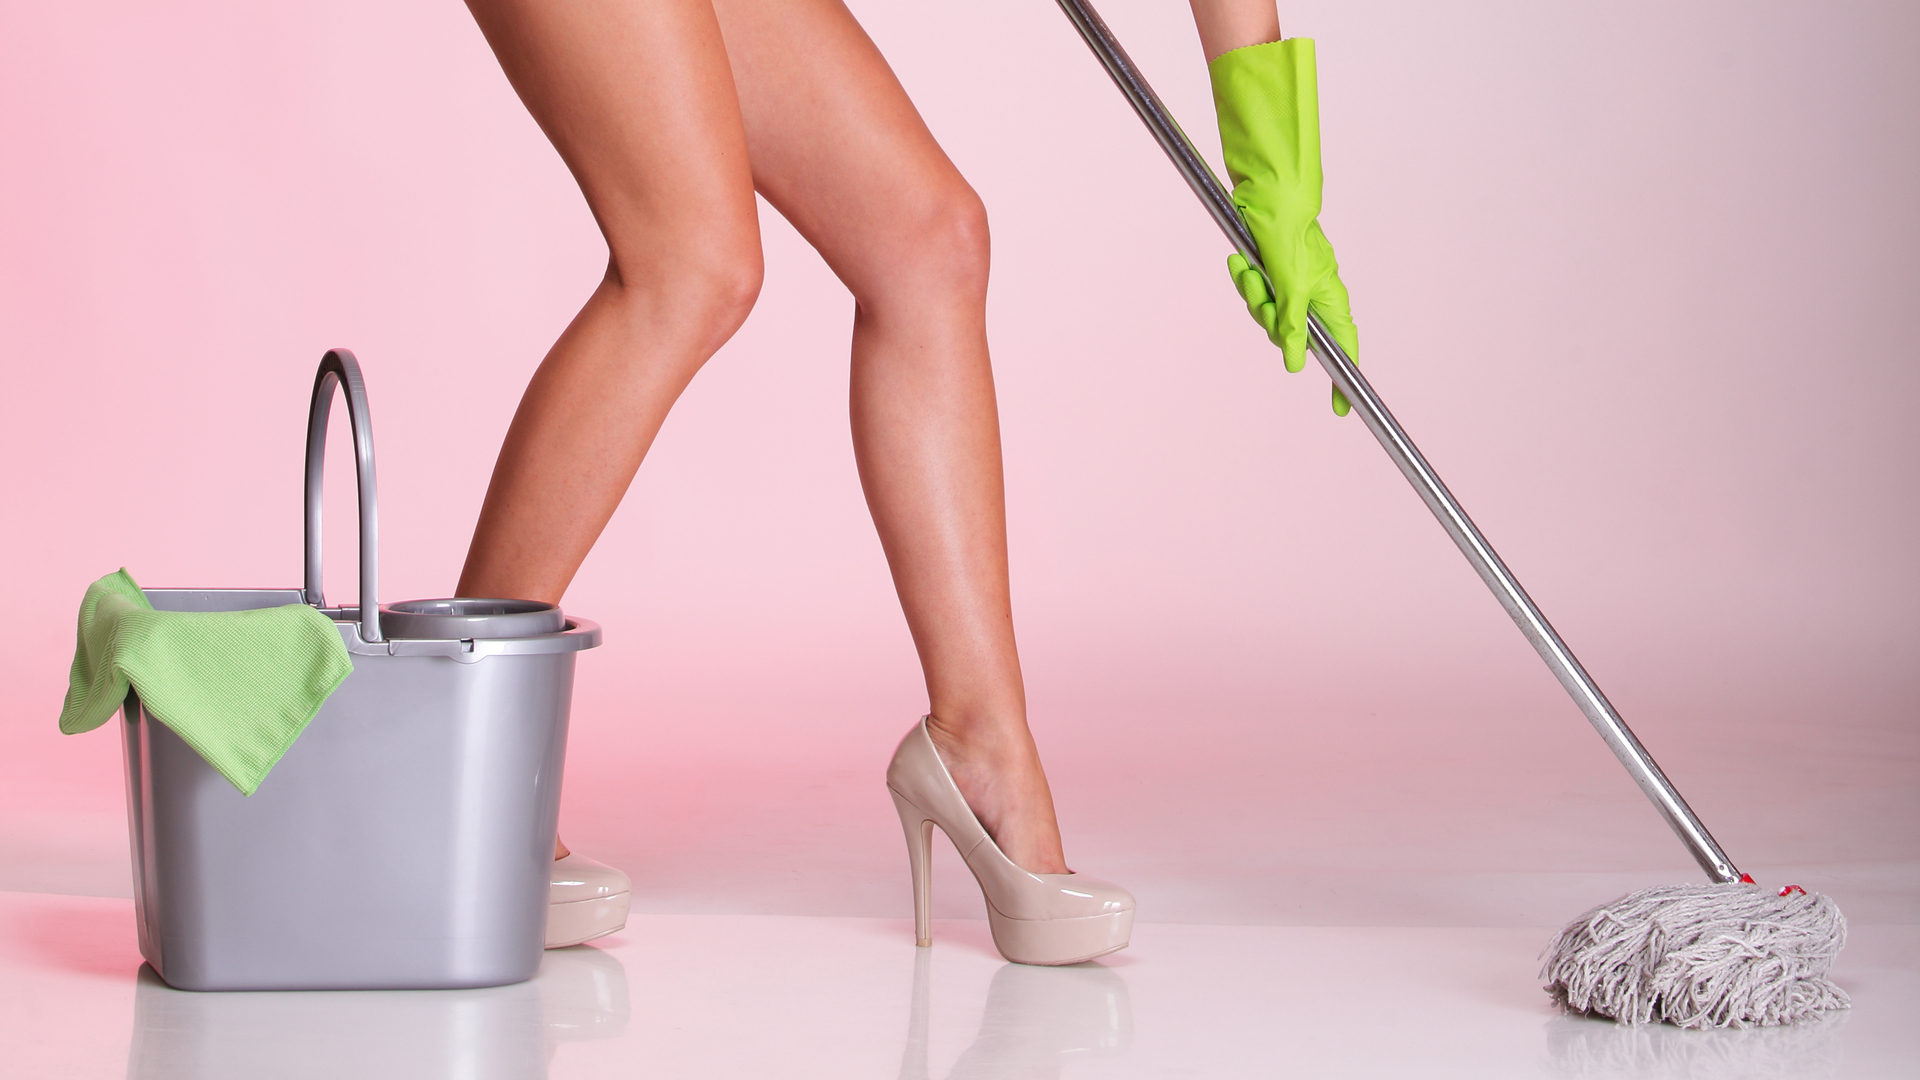 Help wanted: Nude cleaning business opening in Auckland